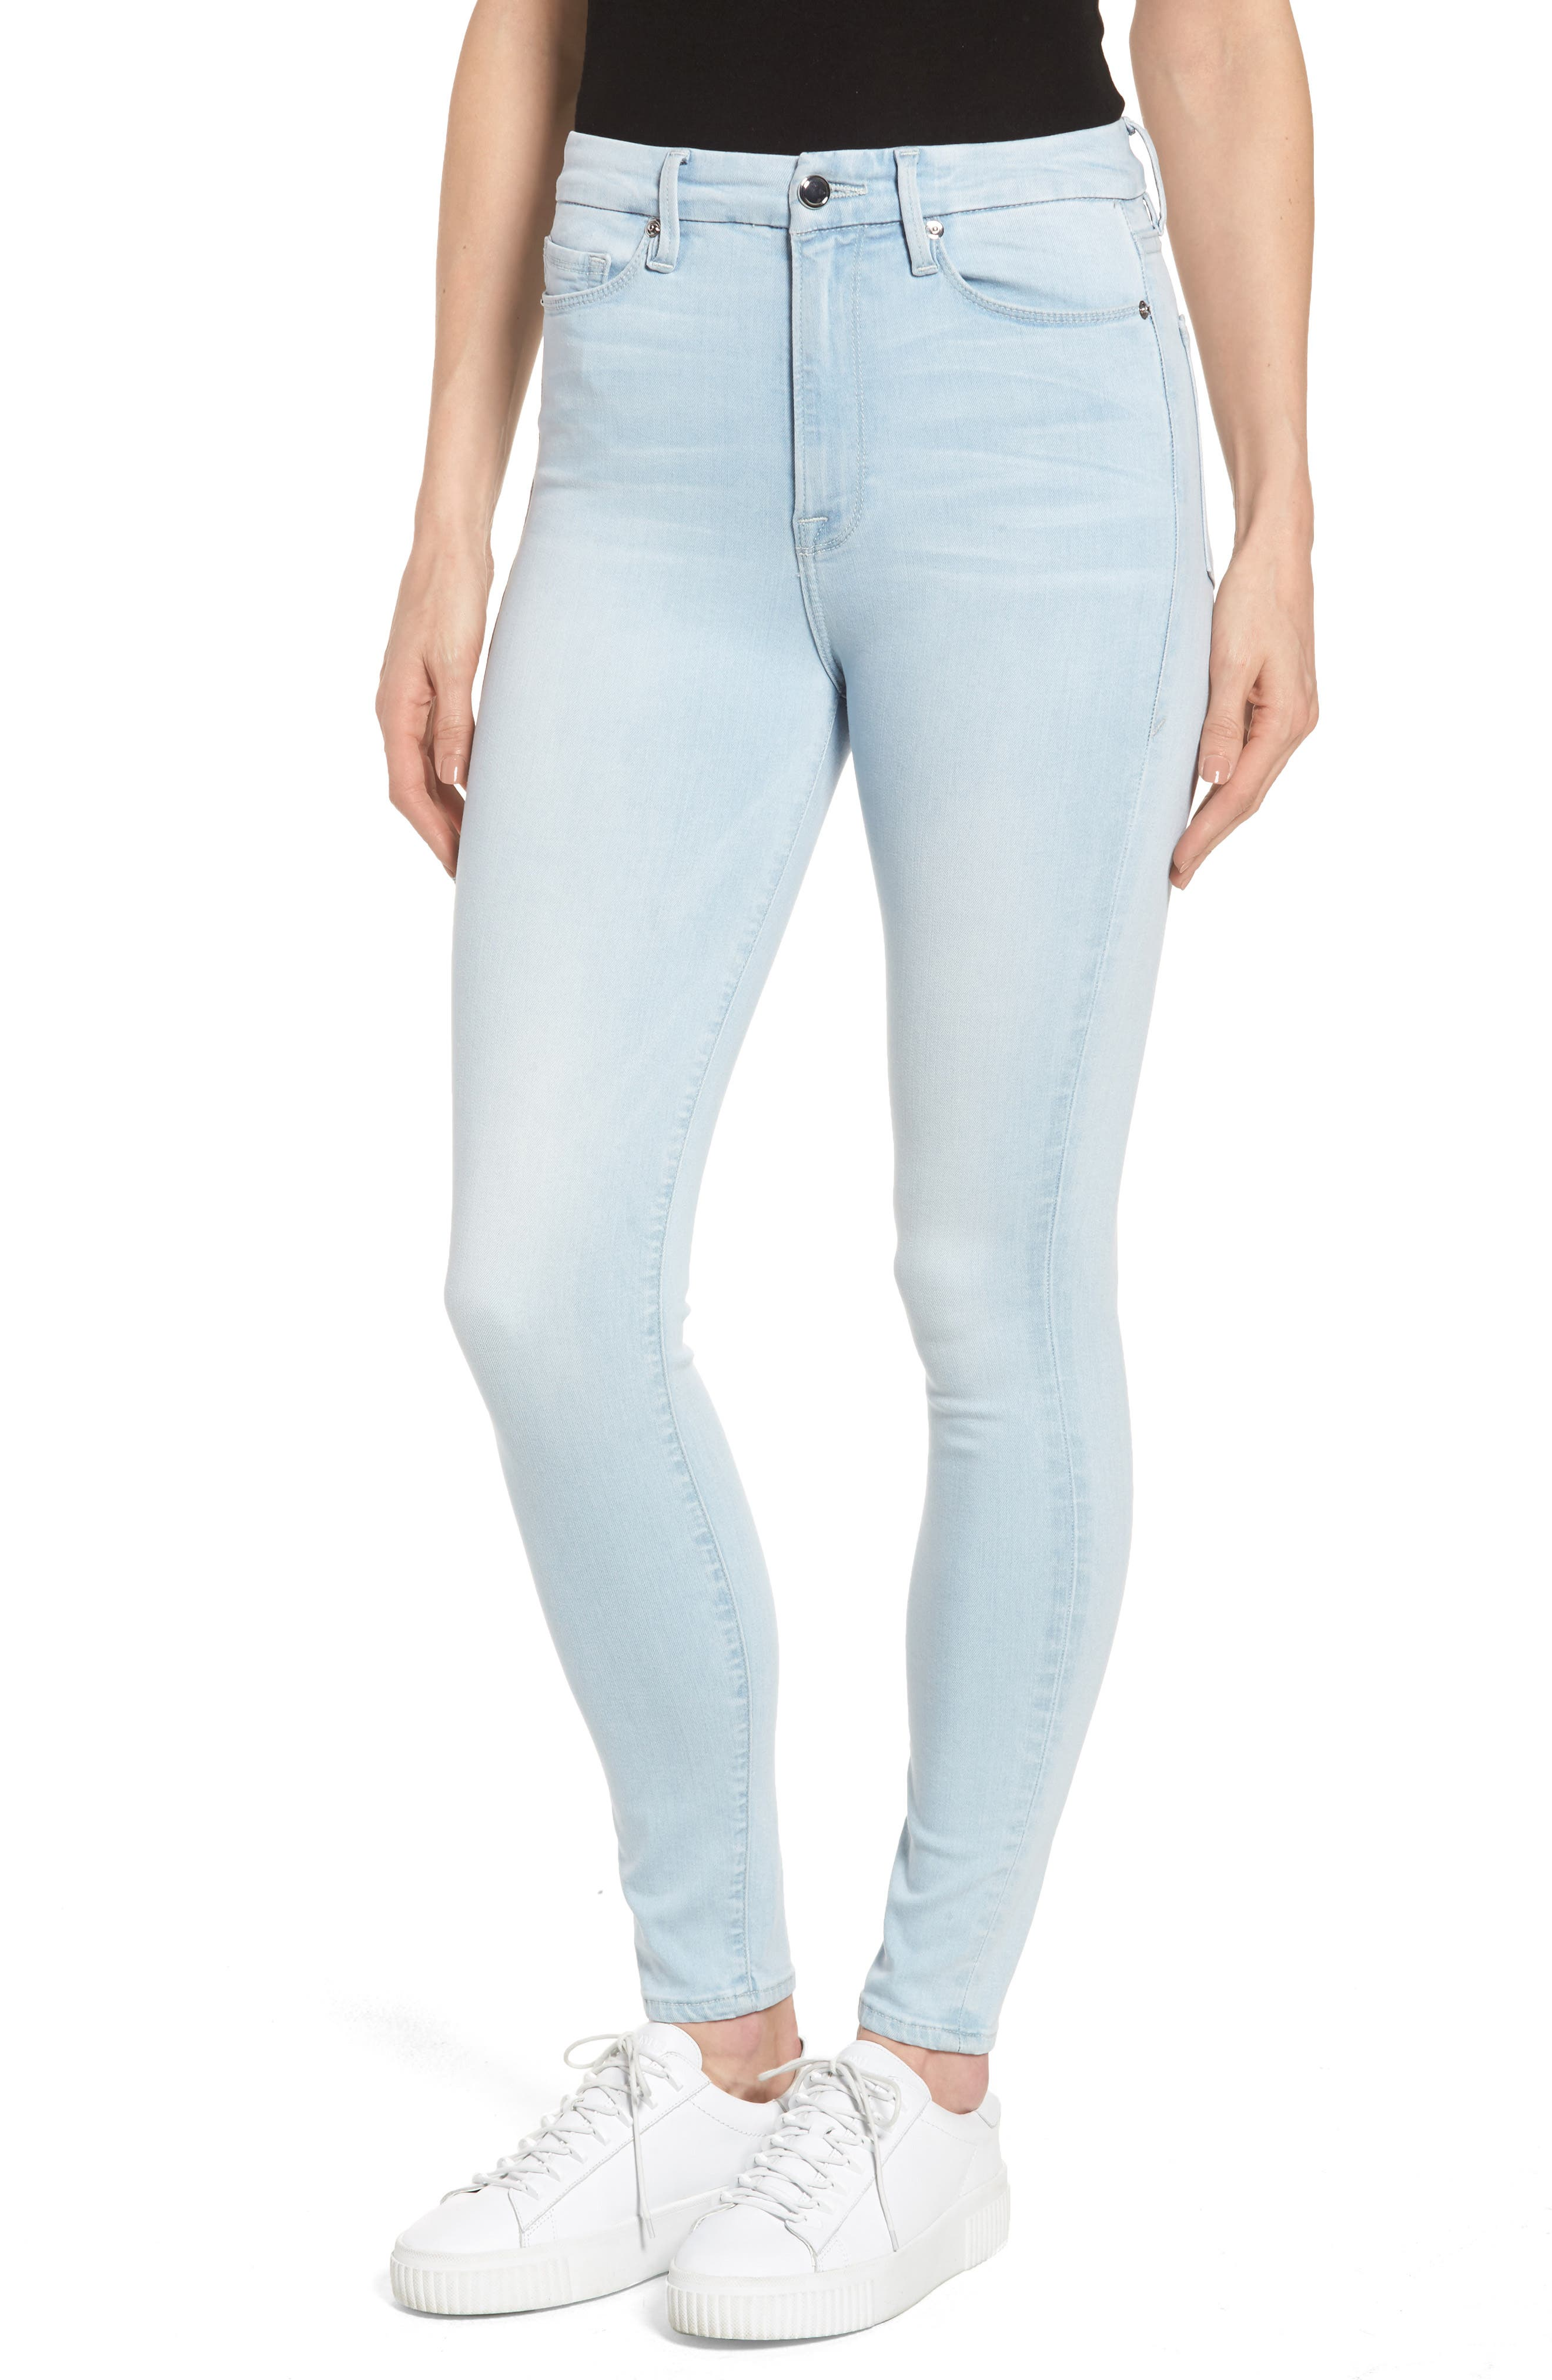 Alternate Image 1 Selected - Good American Good Waist High Waist Crop Skinny Jeans